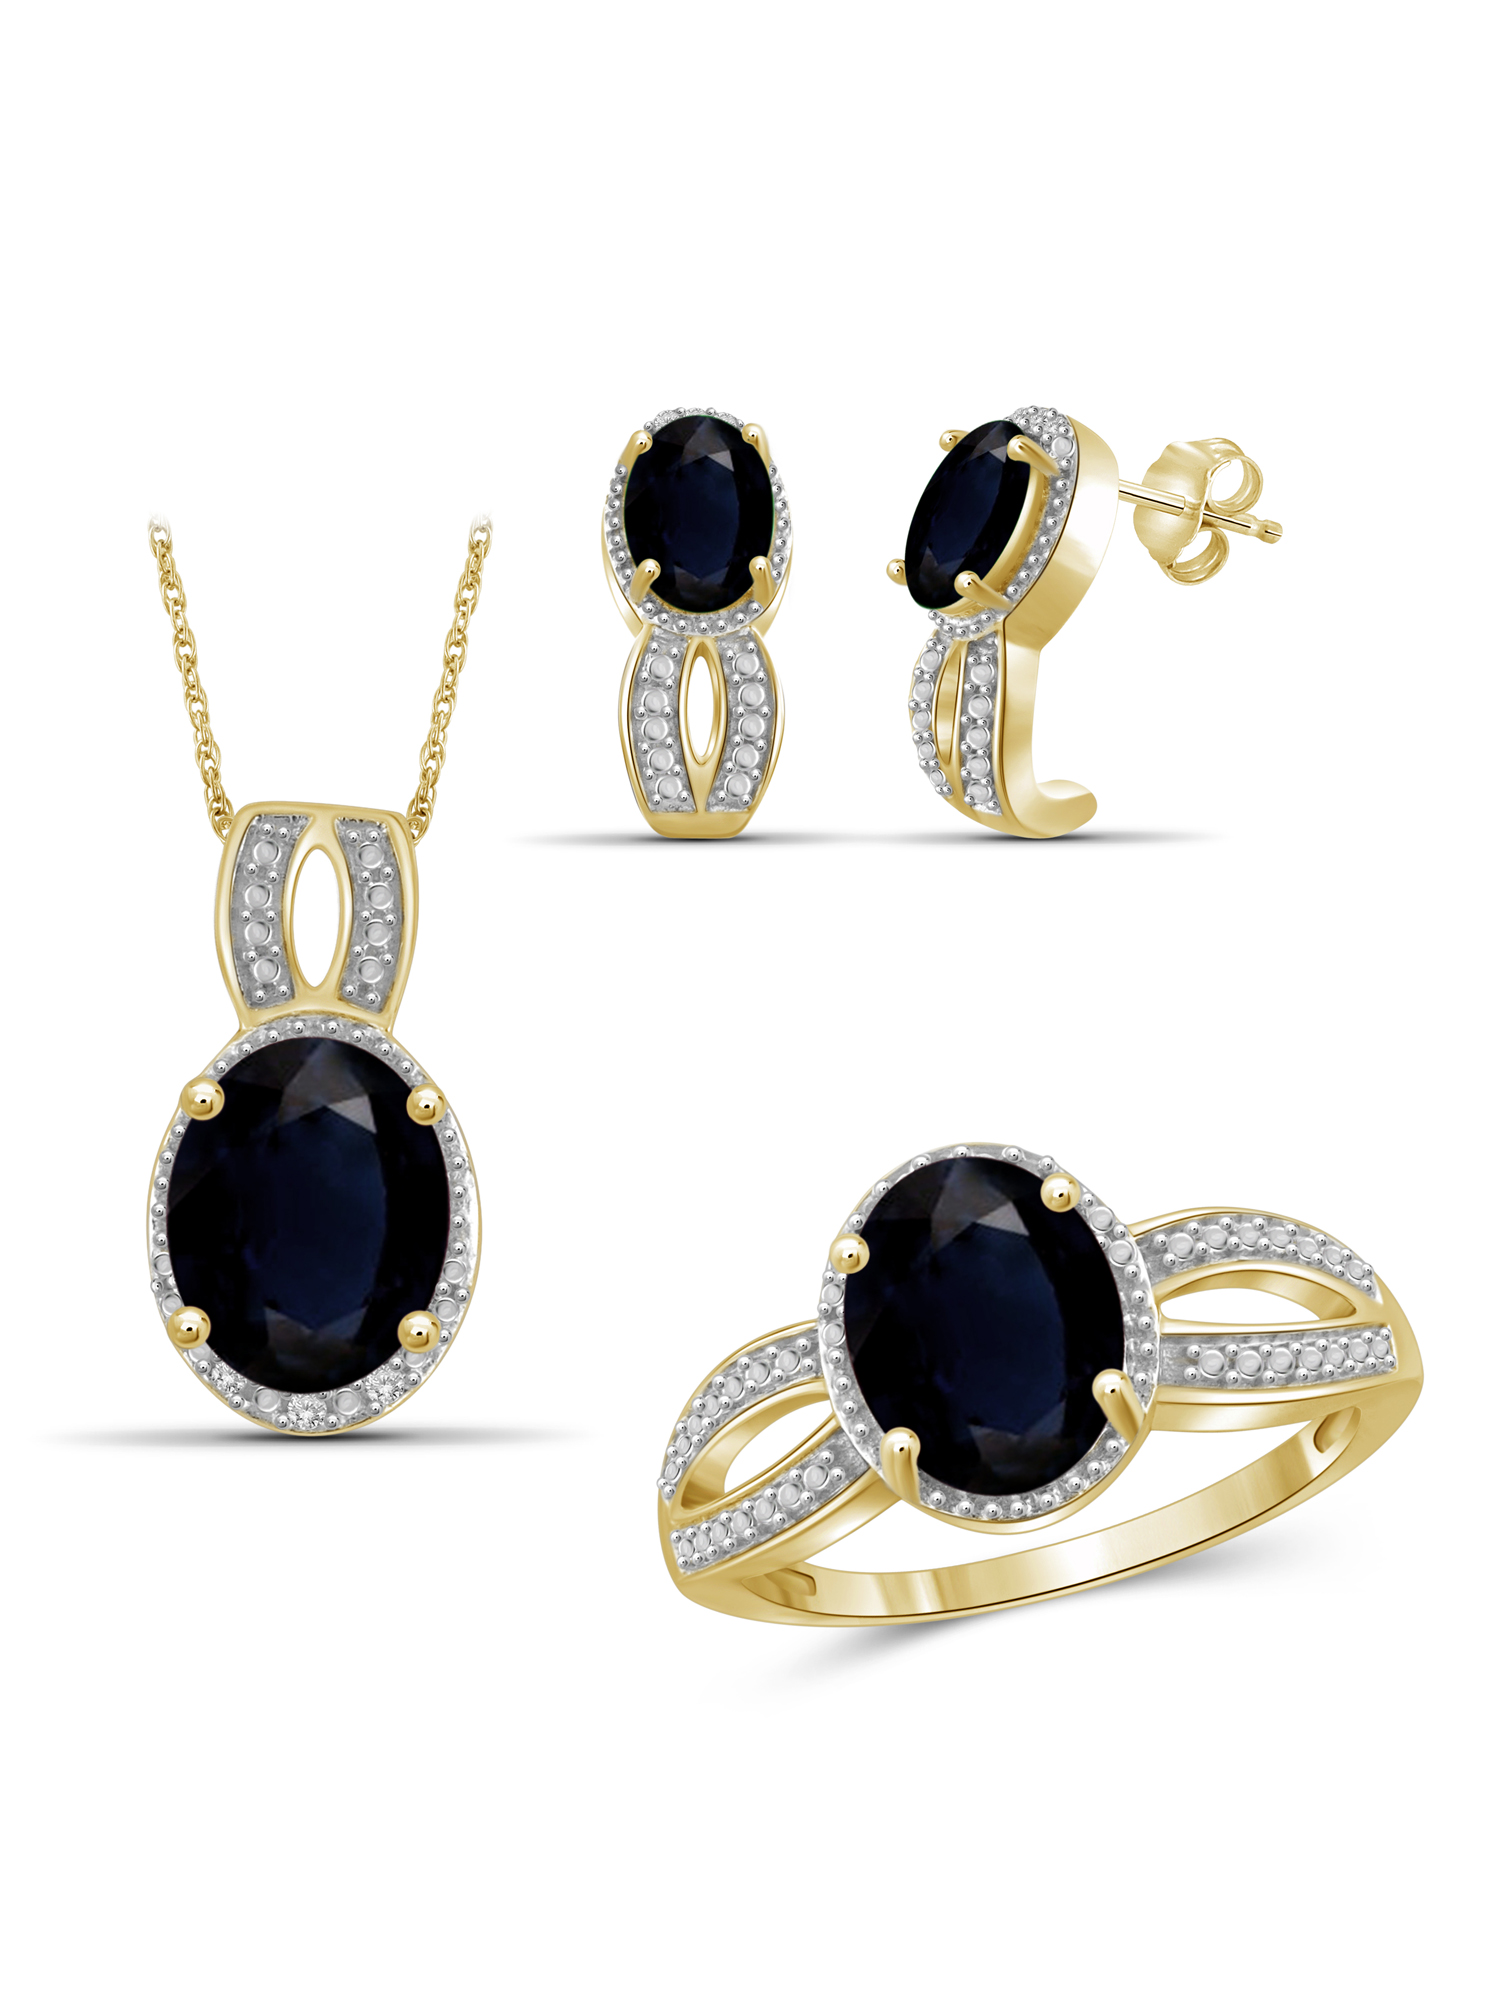 JewelersClub 7 3/4 Carat T.G.W. Sapphire And White Diamond Accent 14k Gold Over Silver 3-Piece Jewelry set